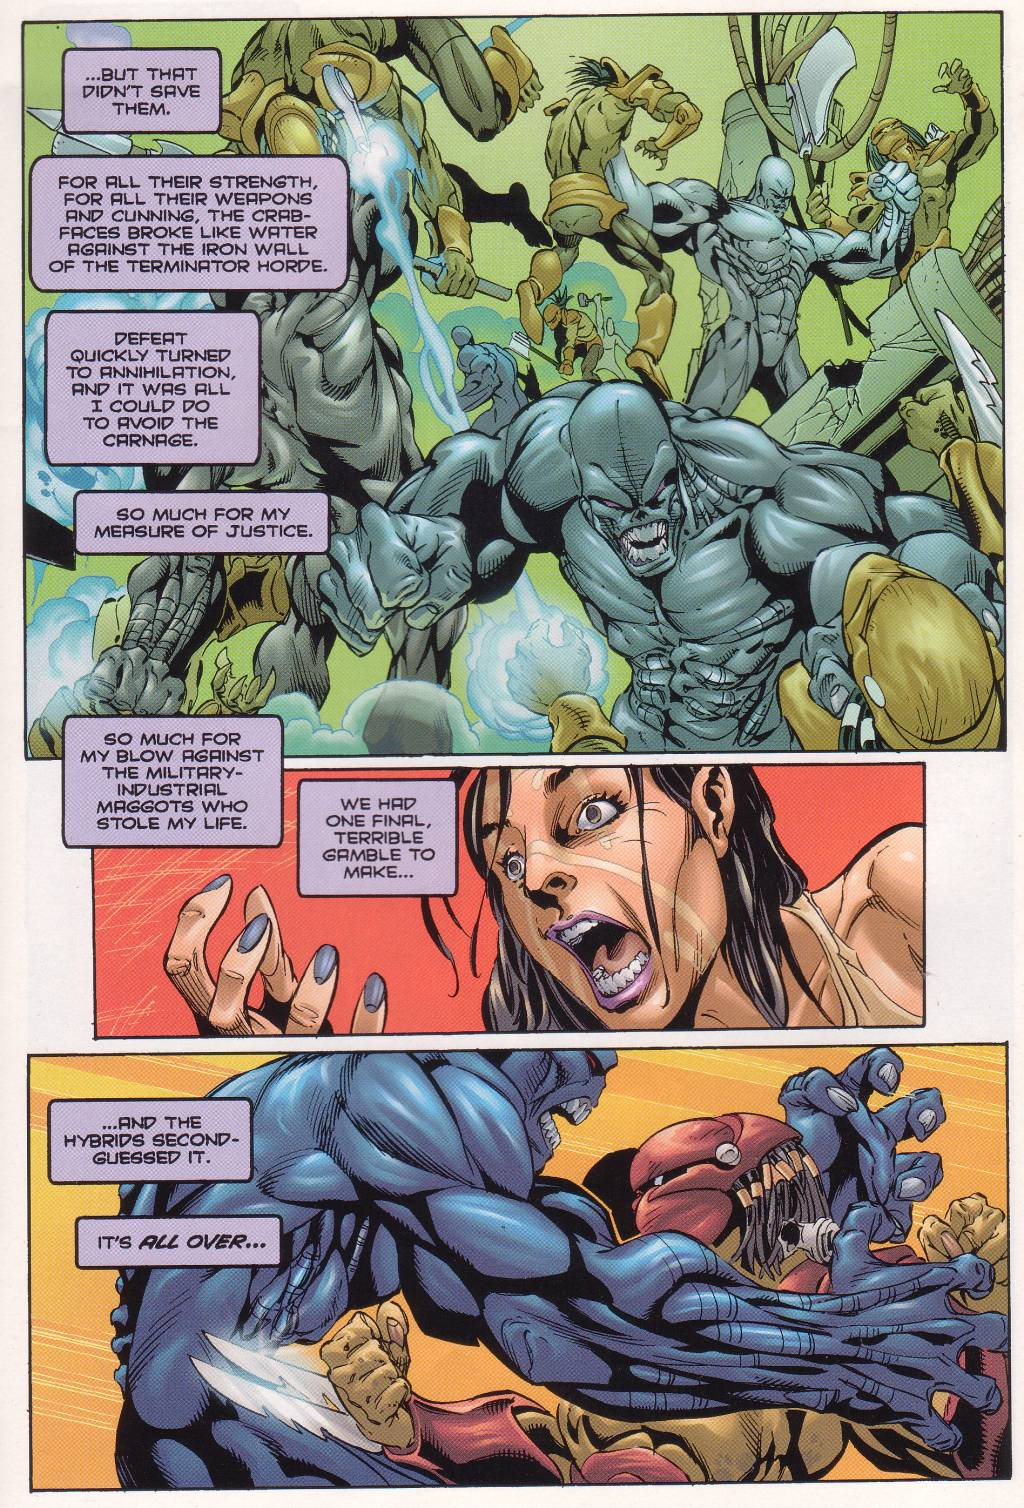 Read online Aliens vs. Predator vs. The Terminator comic -  Issue #4 - 9